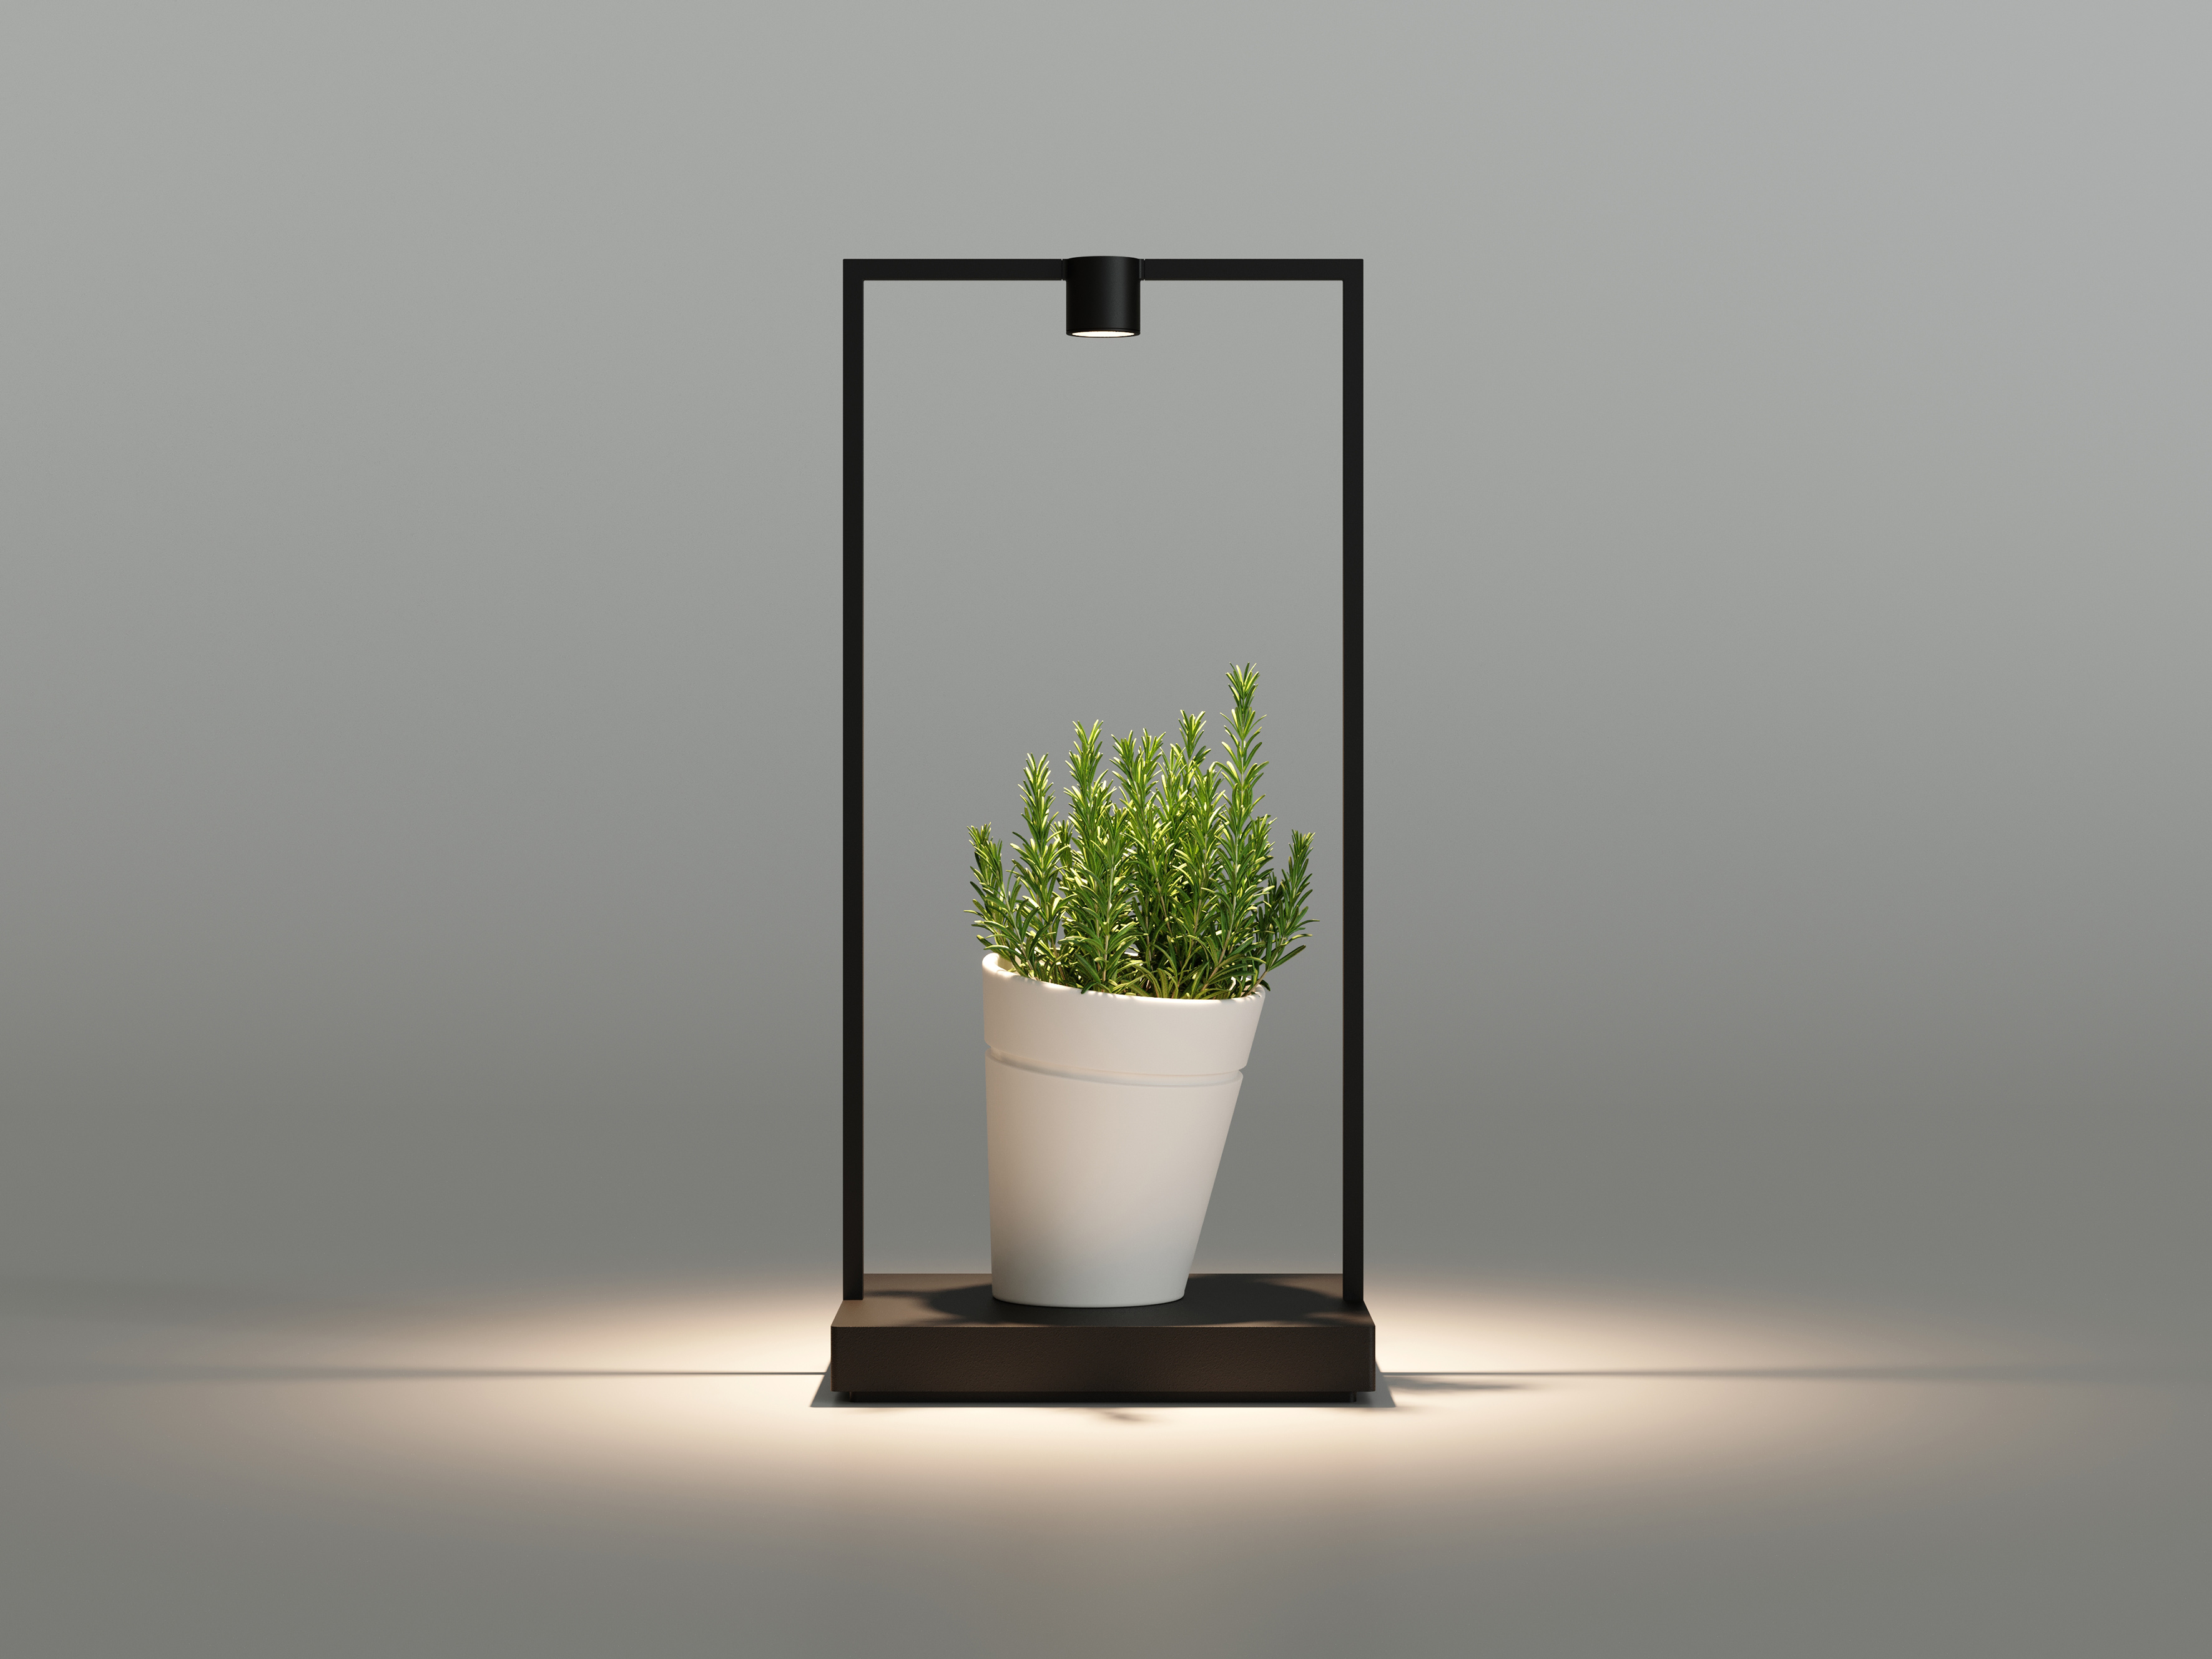 Portable table lamp in the shape of a metal frame. The hollow in the middle is filled with a plant that gets hit by the light.